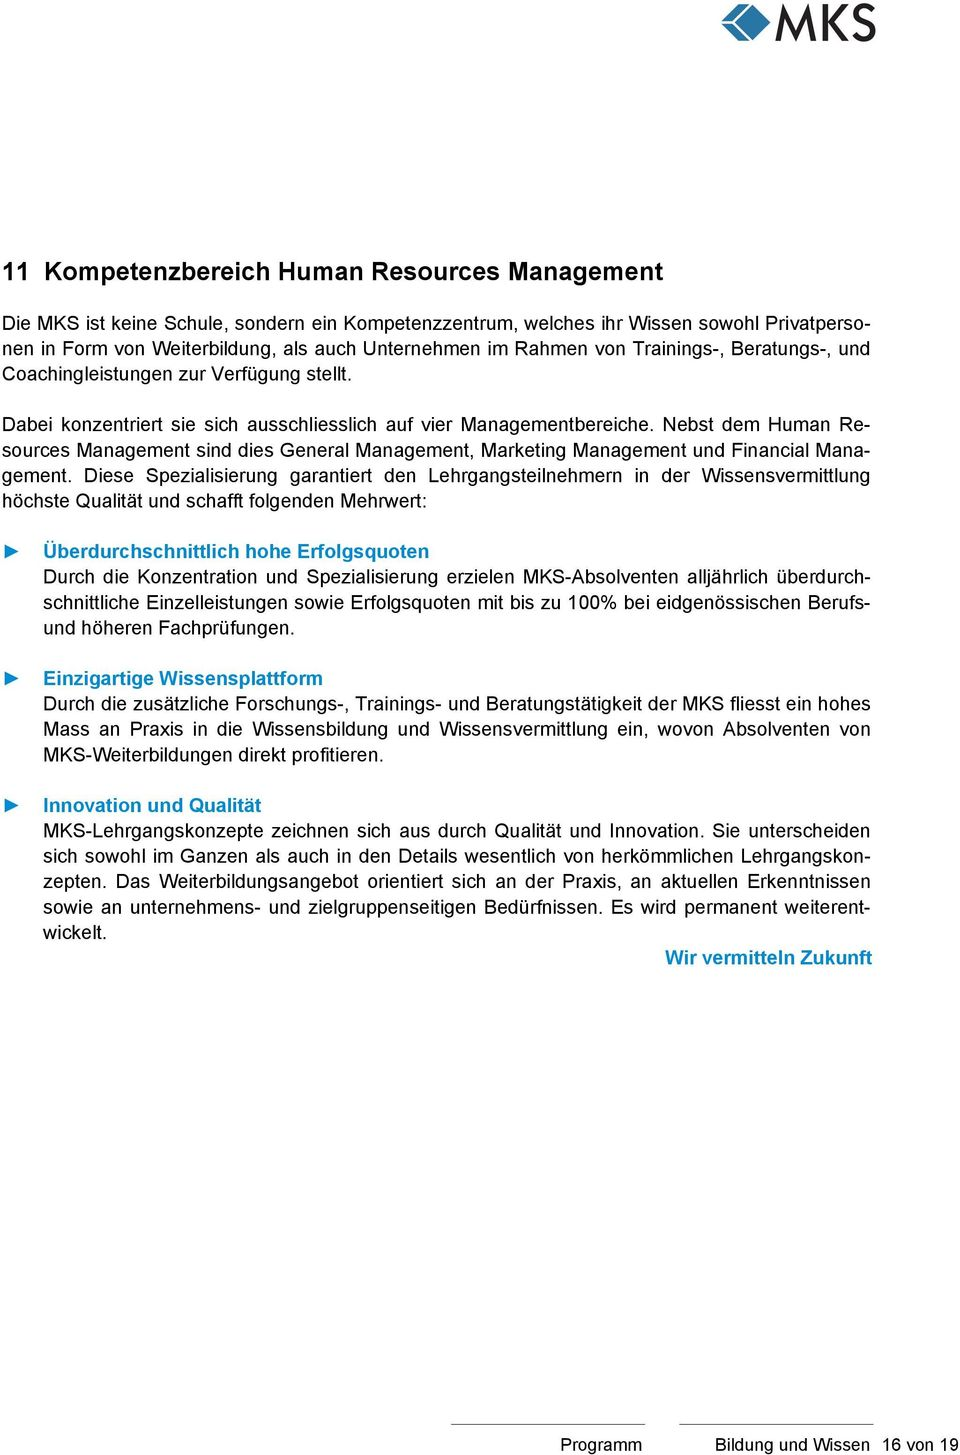 Nebst dem Human Resources Management sind dies General Management, Marketing Management und Financial Management.